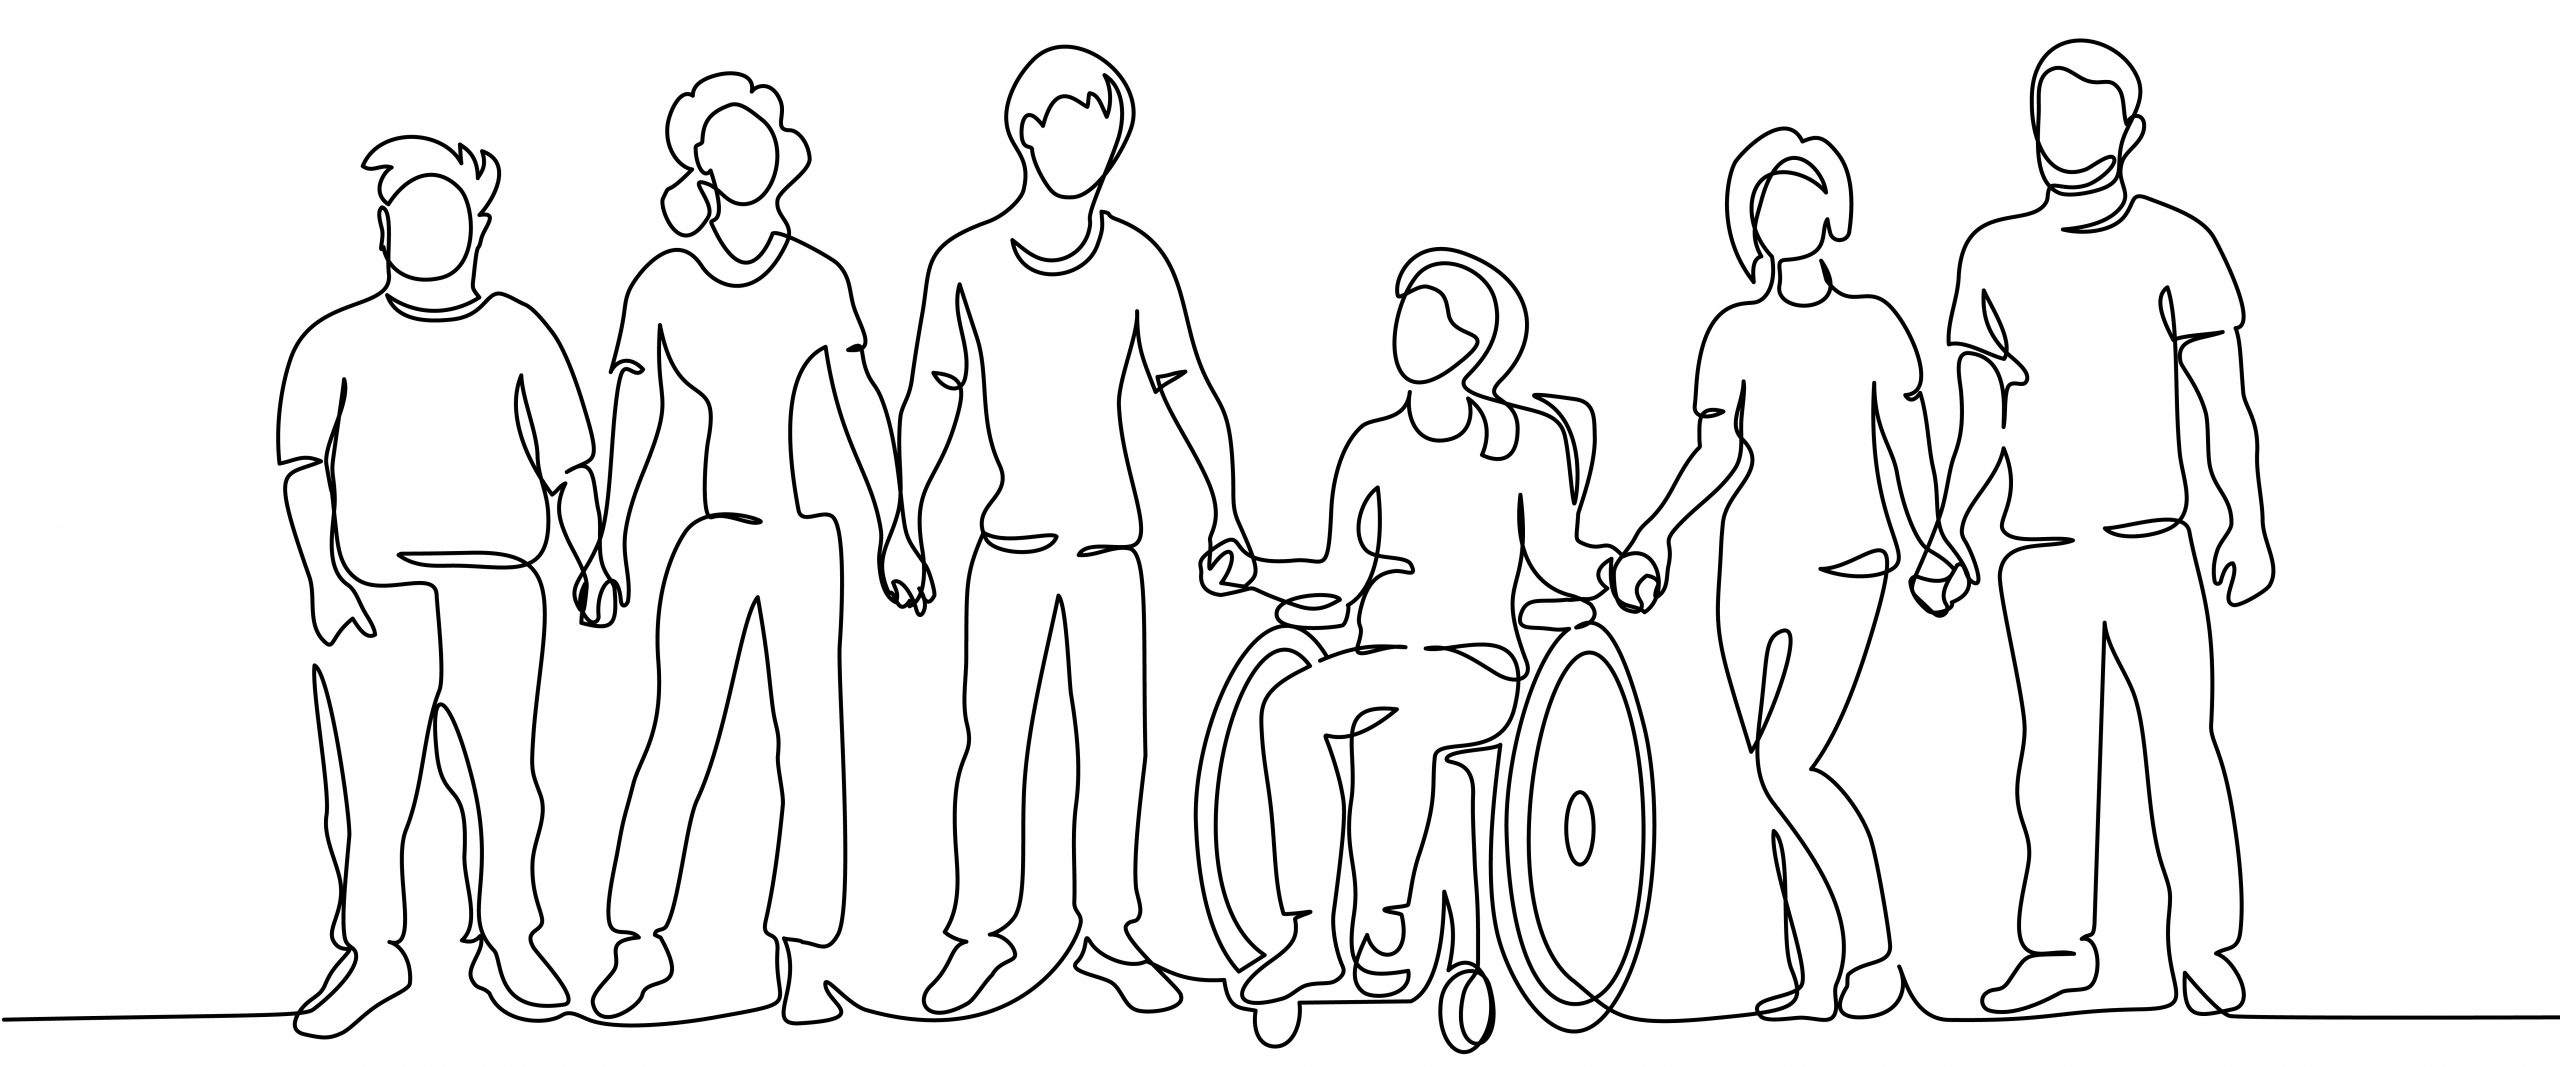 Line drawing, black ink on white background, of six people of different genders, sizes and abilities.